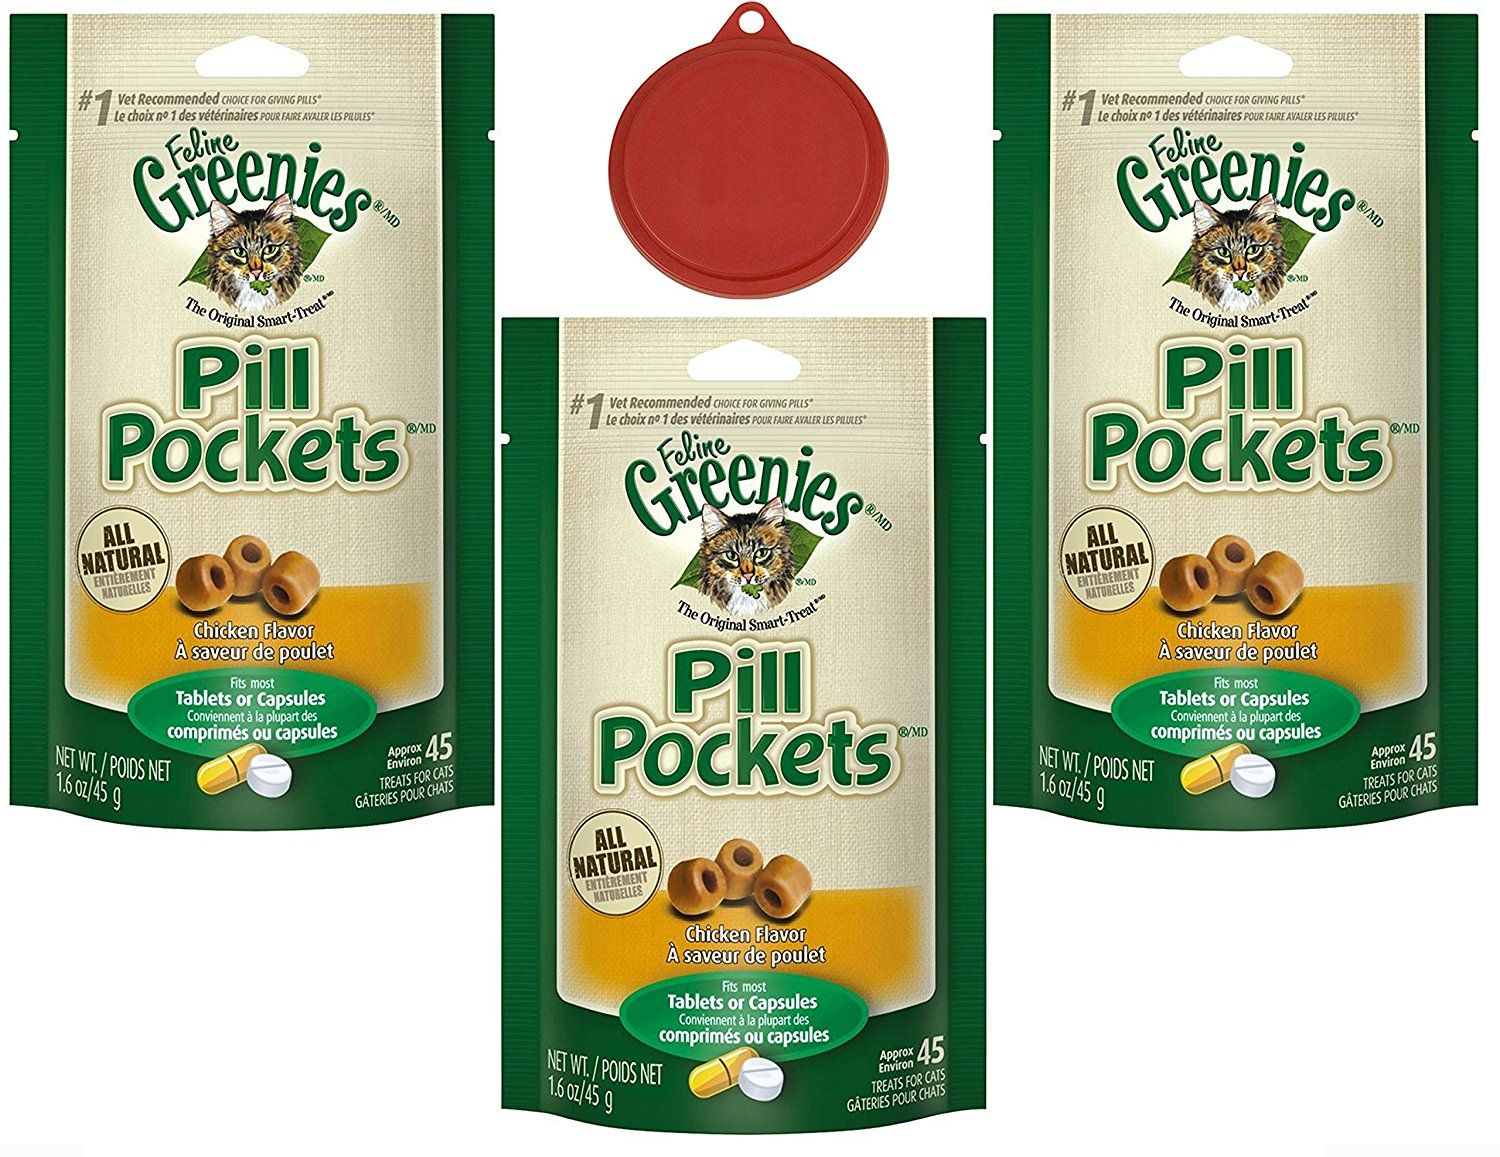 Greenies Pill Pockets Cat Treats Value Pack - Greenies Chicken Flavor Treats 3 Pack (135 Treats) 1.6 Oz W/ Bonus Travel Pet Bowl for Snacks >>> Check out the image by visiting the link.